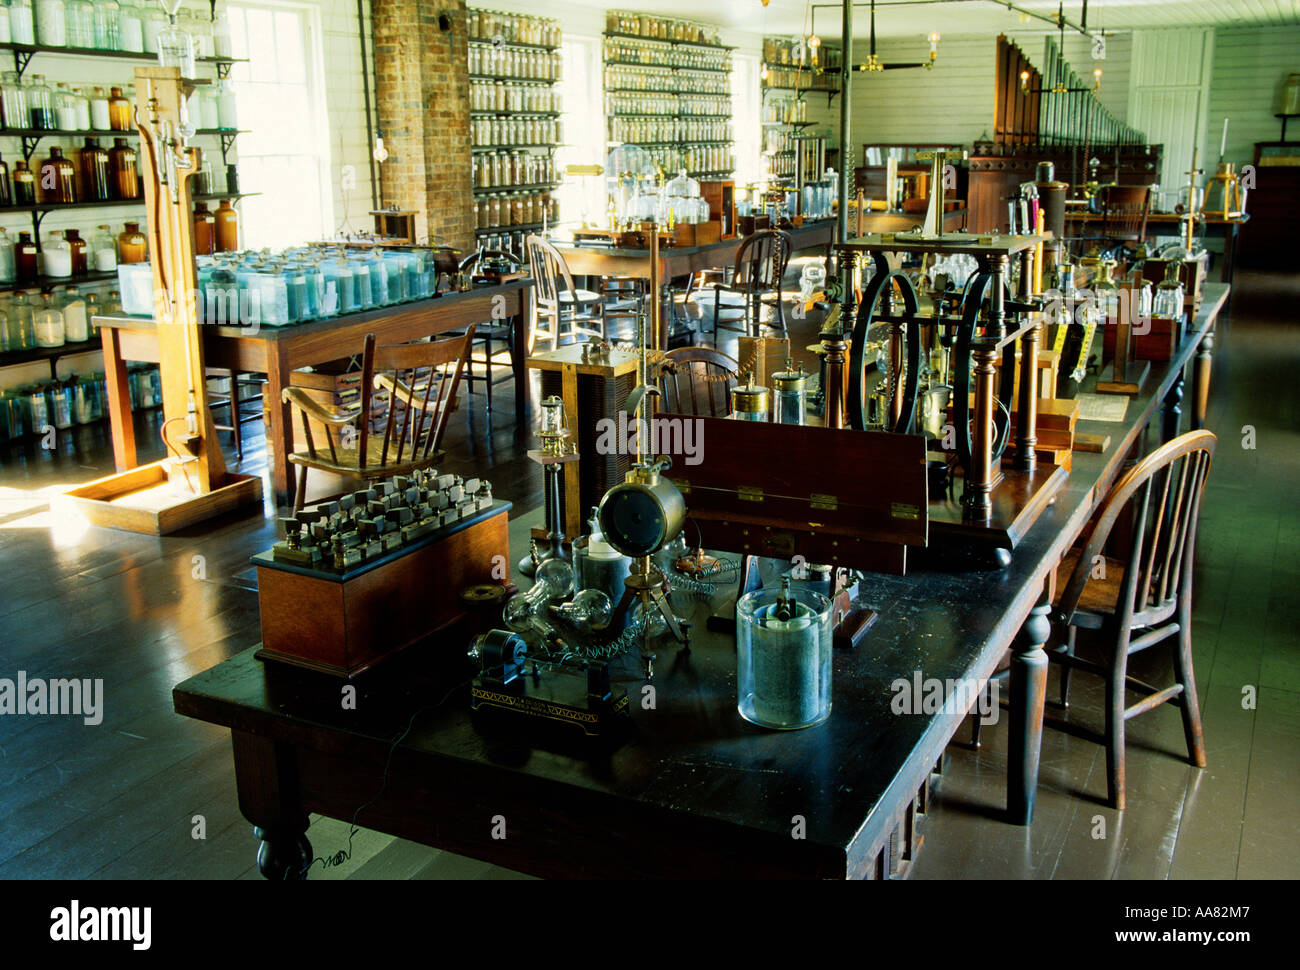 Thomas edison menlo park laboratory replicated at the henry ford greenfield village dearborn michigan